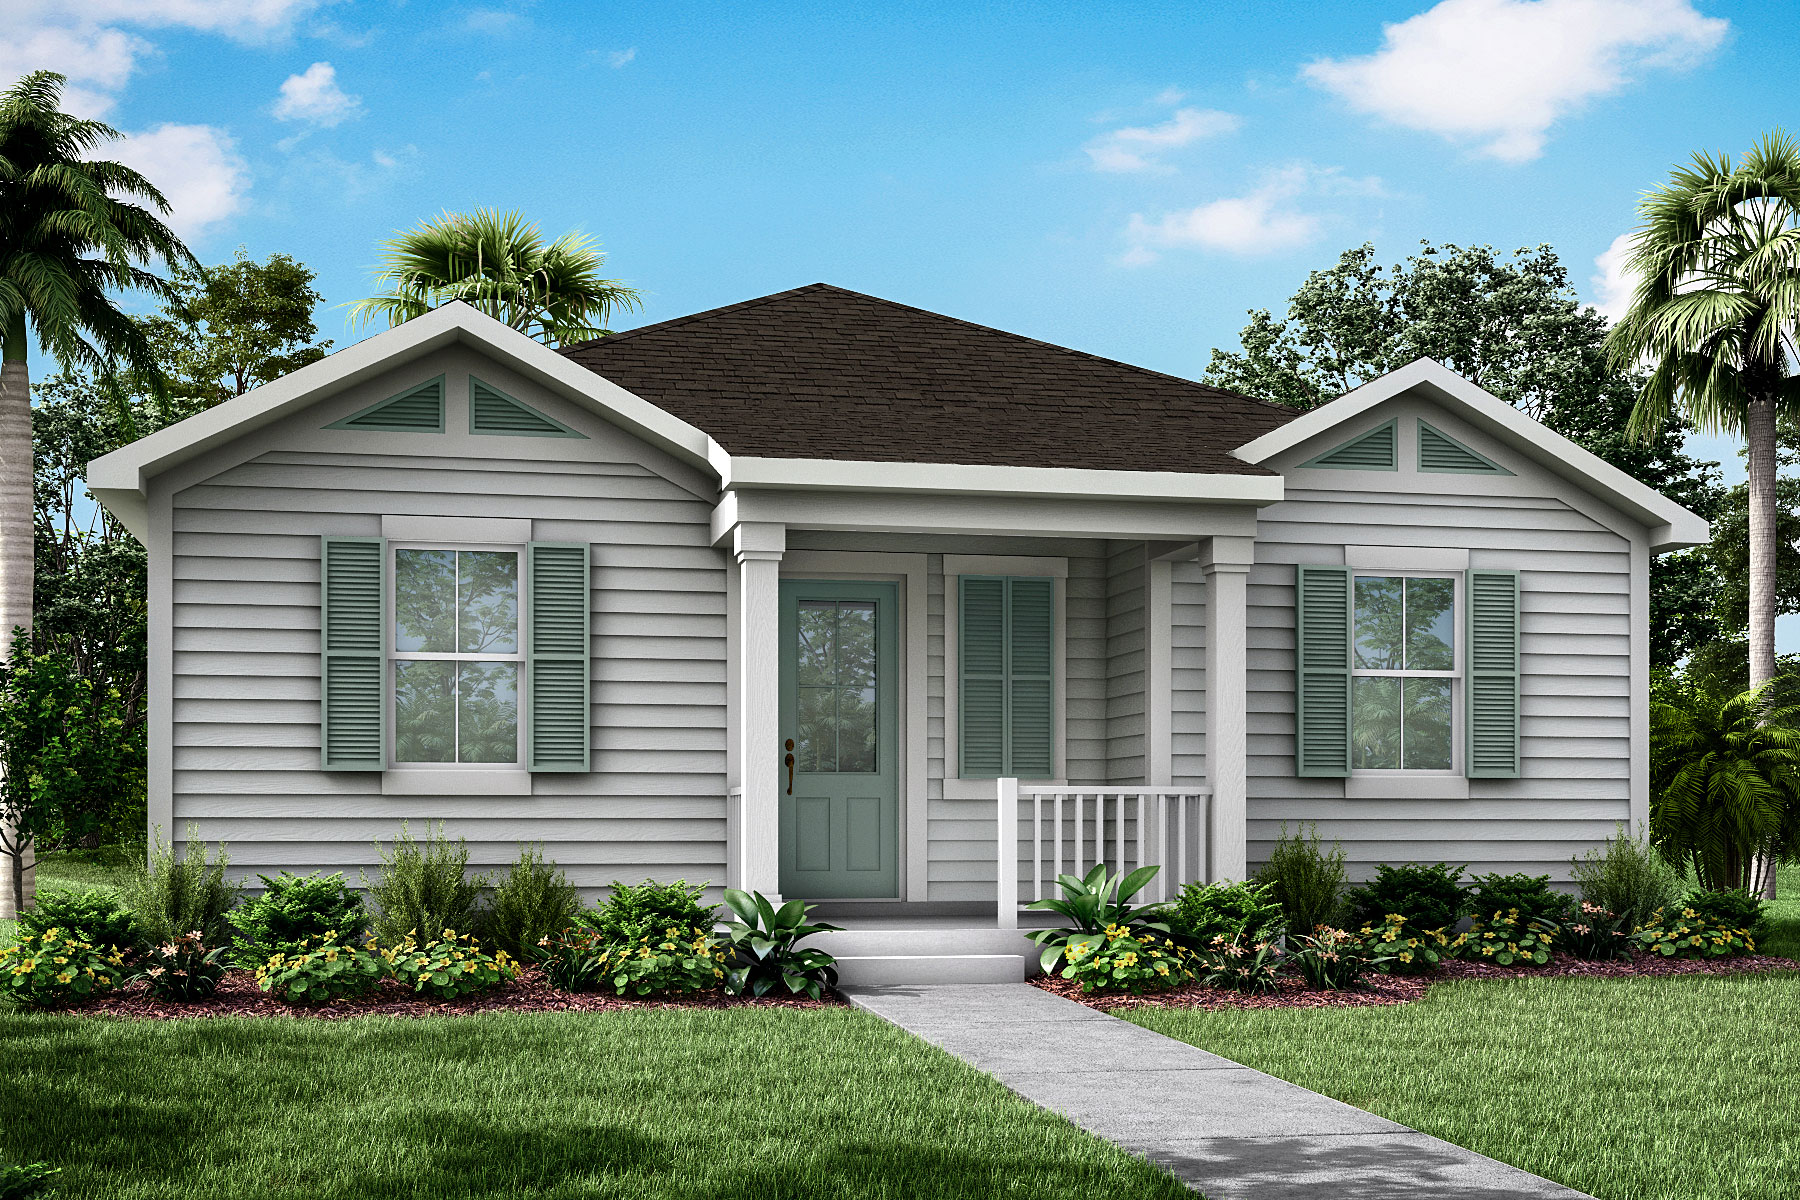 Newport Plan Elevation Front at Forest Park at Wildlight in Yulee Florida by Mattamy Homes